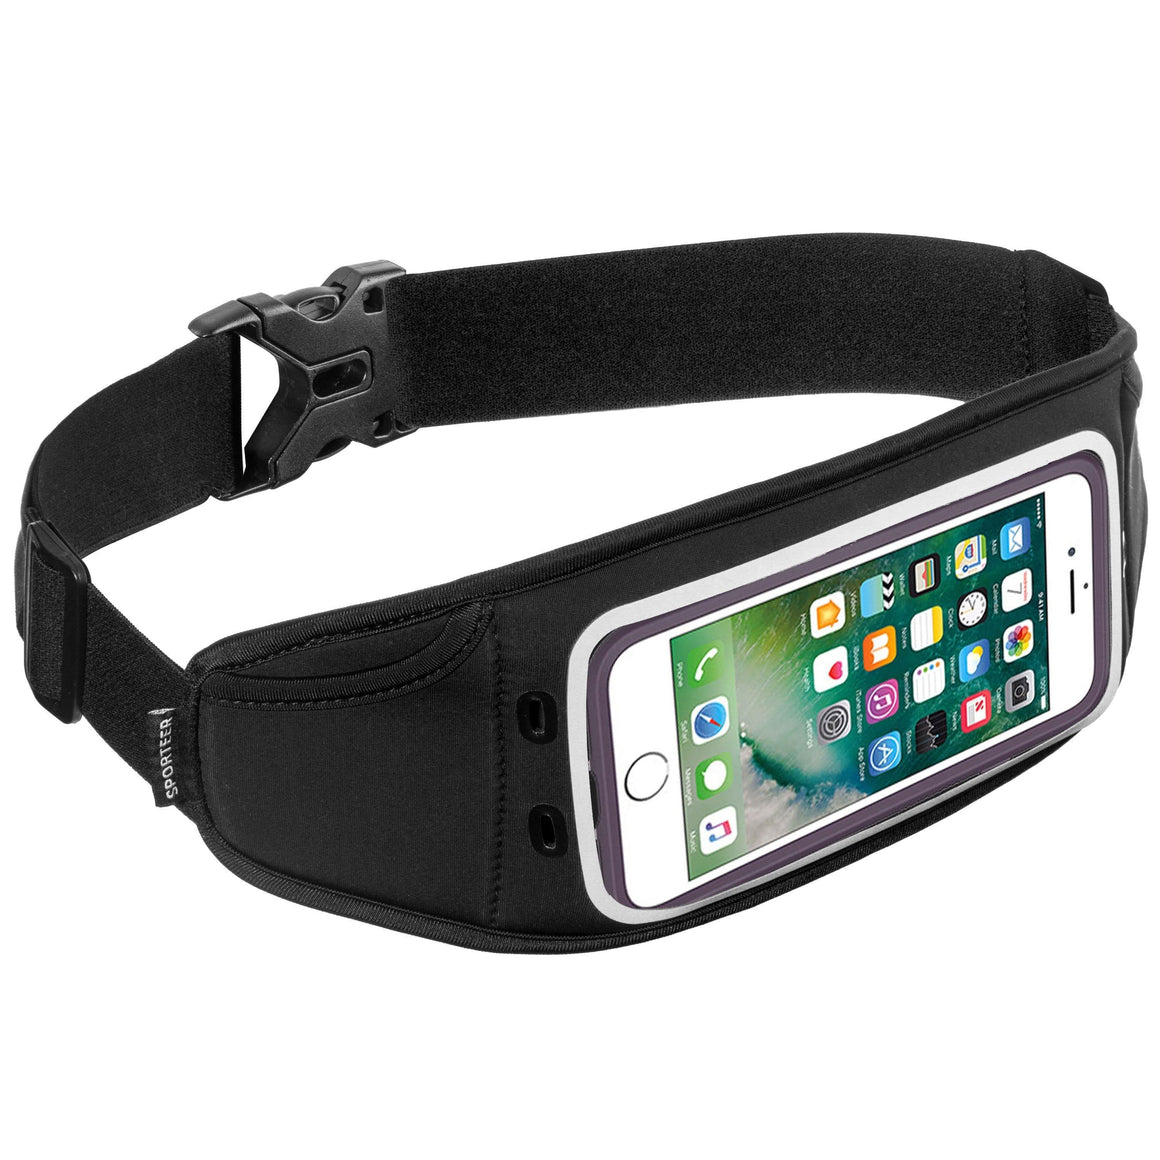 Sporteer Zephyr runners waist pack for iphone SE